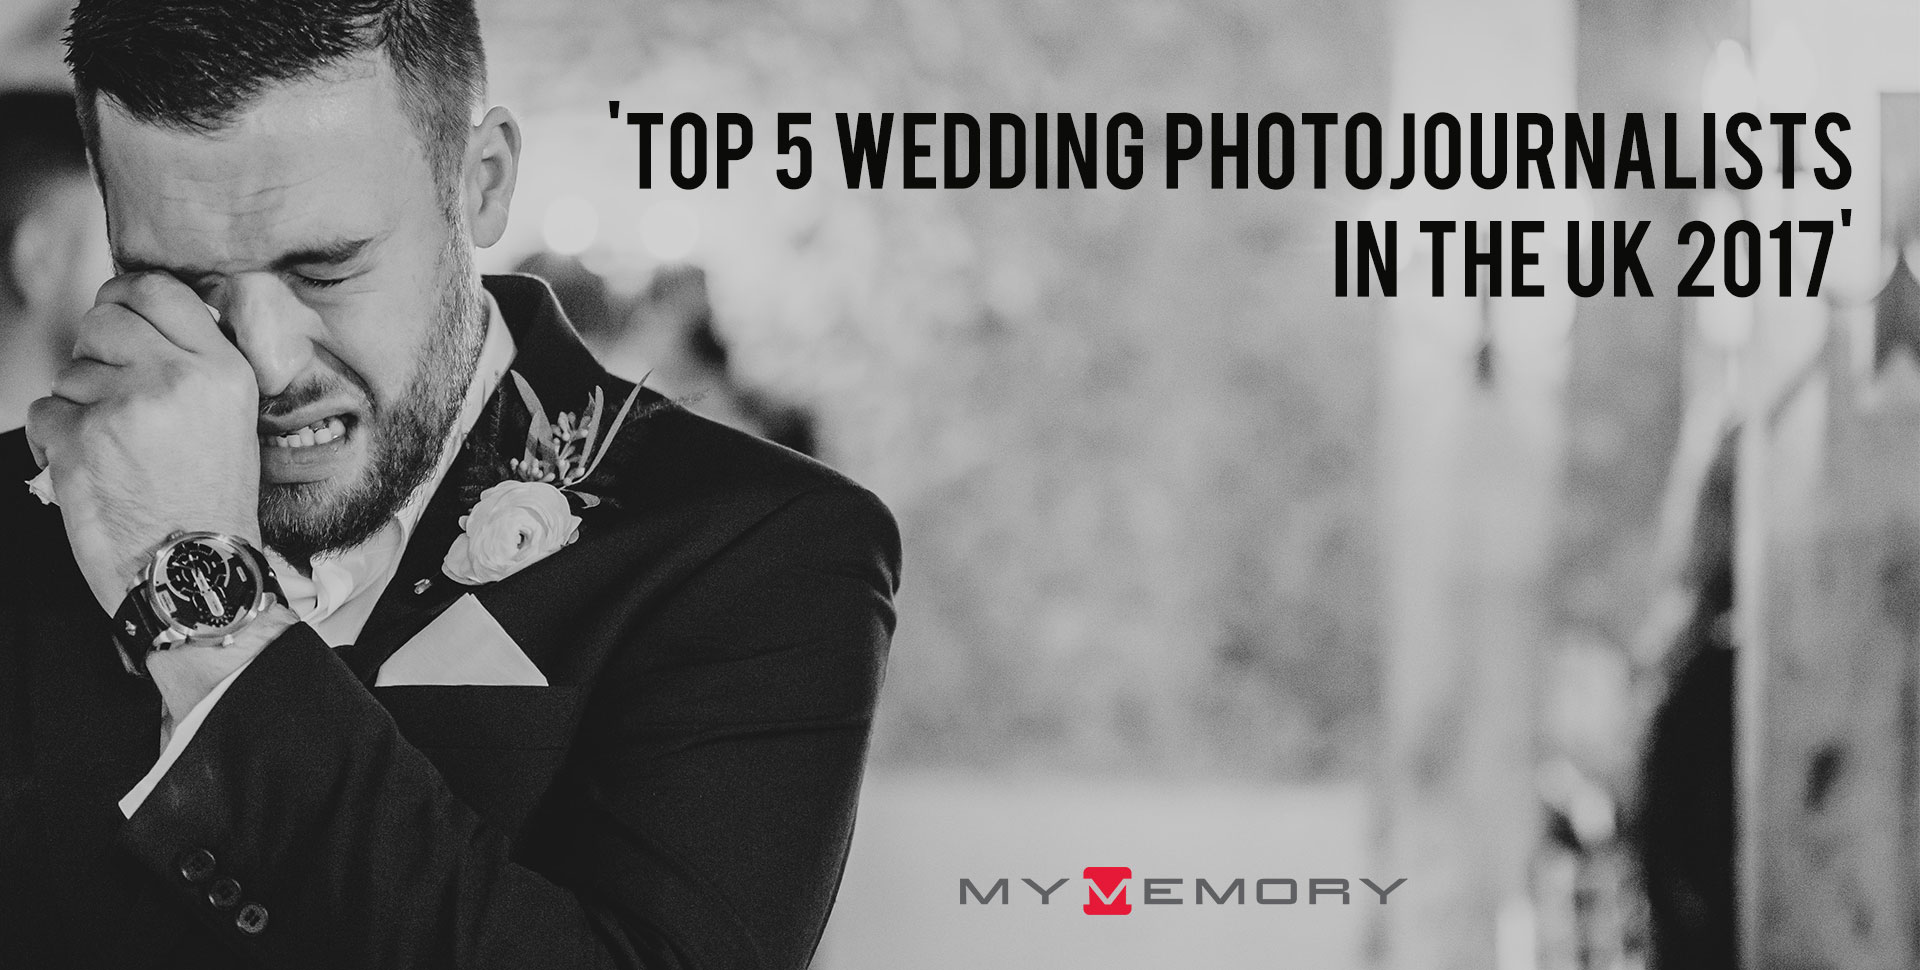 top 5 wedding photojournalist in the UK 2017